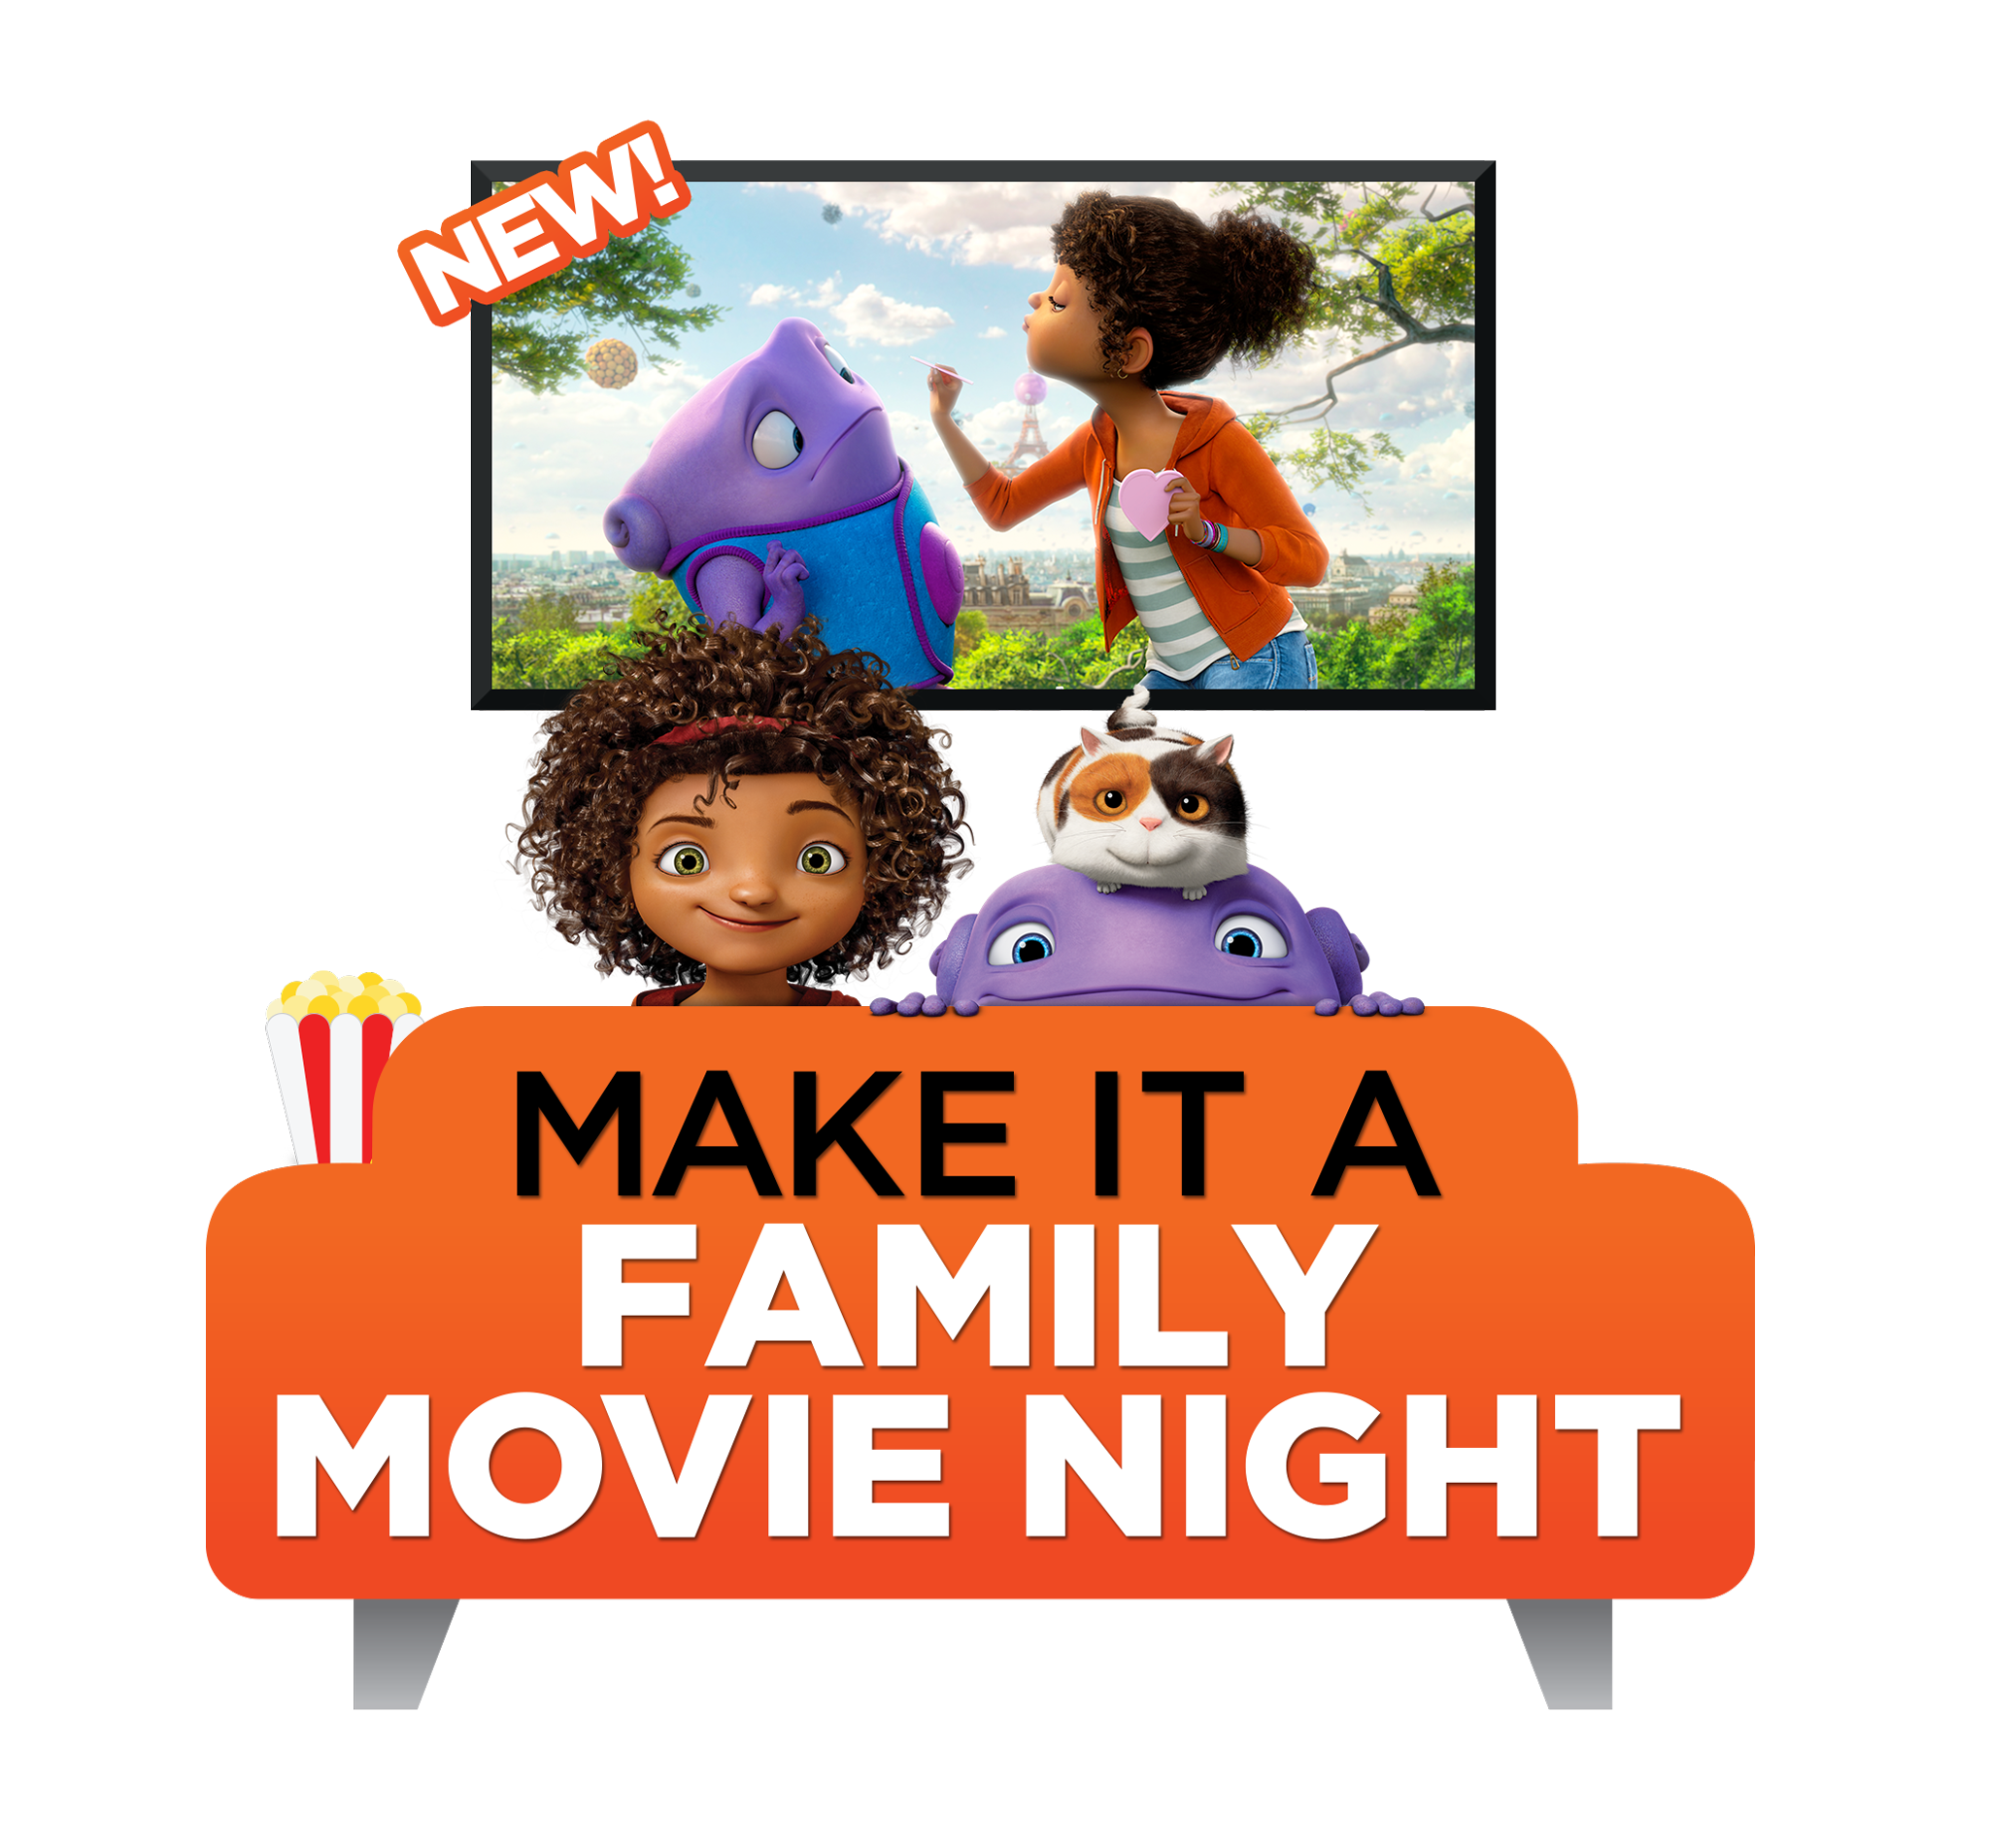 Film clipart movie party. Home themed ideas free